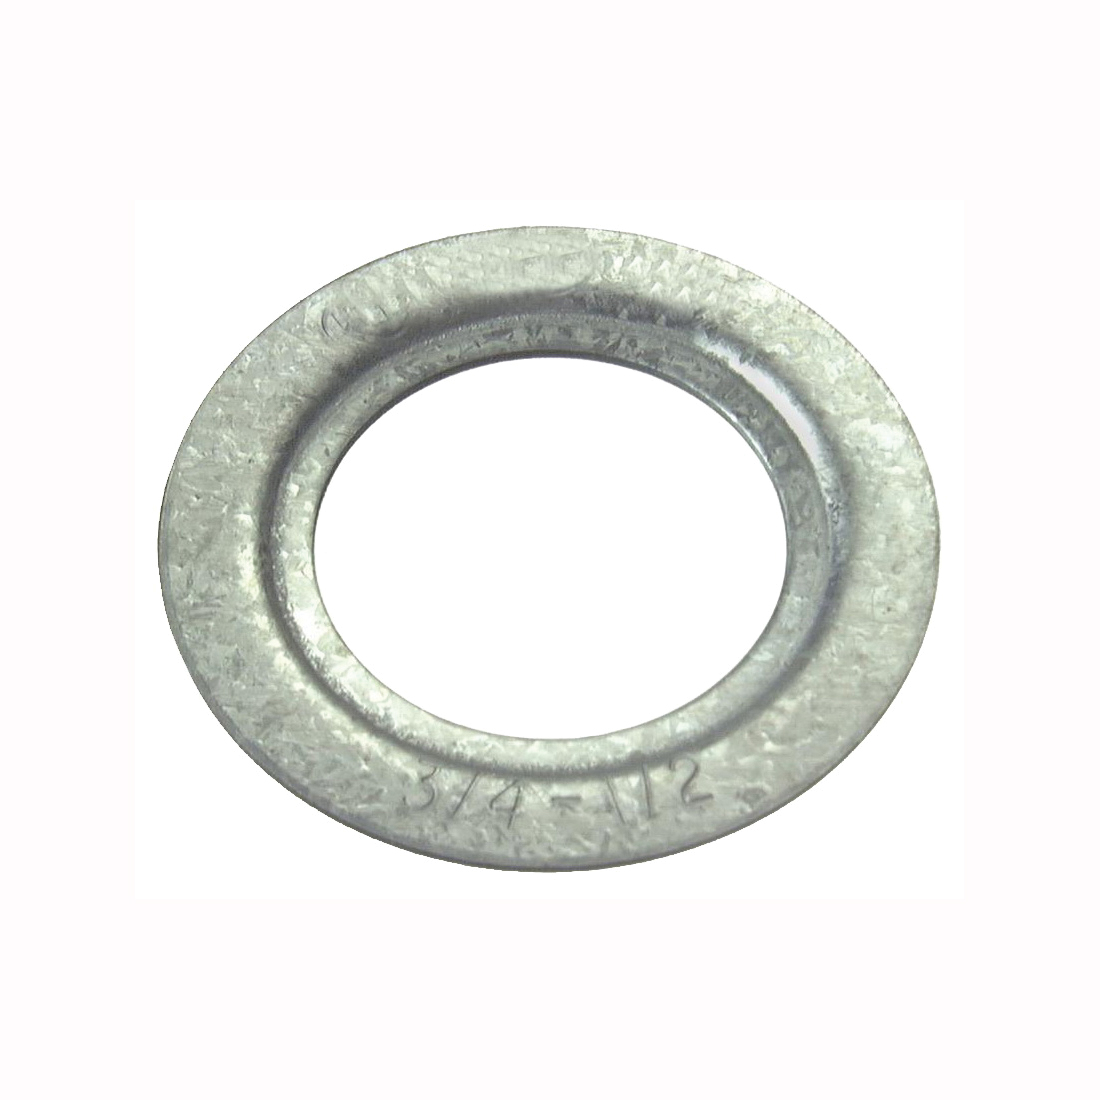 Picture of Halex 96842 Reducing Washer, 2.18 in OD, Steel